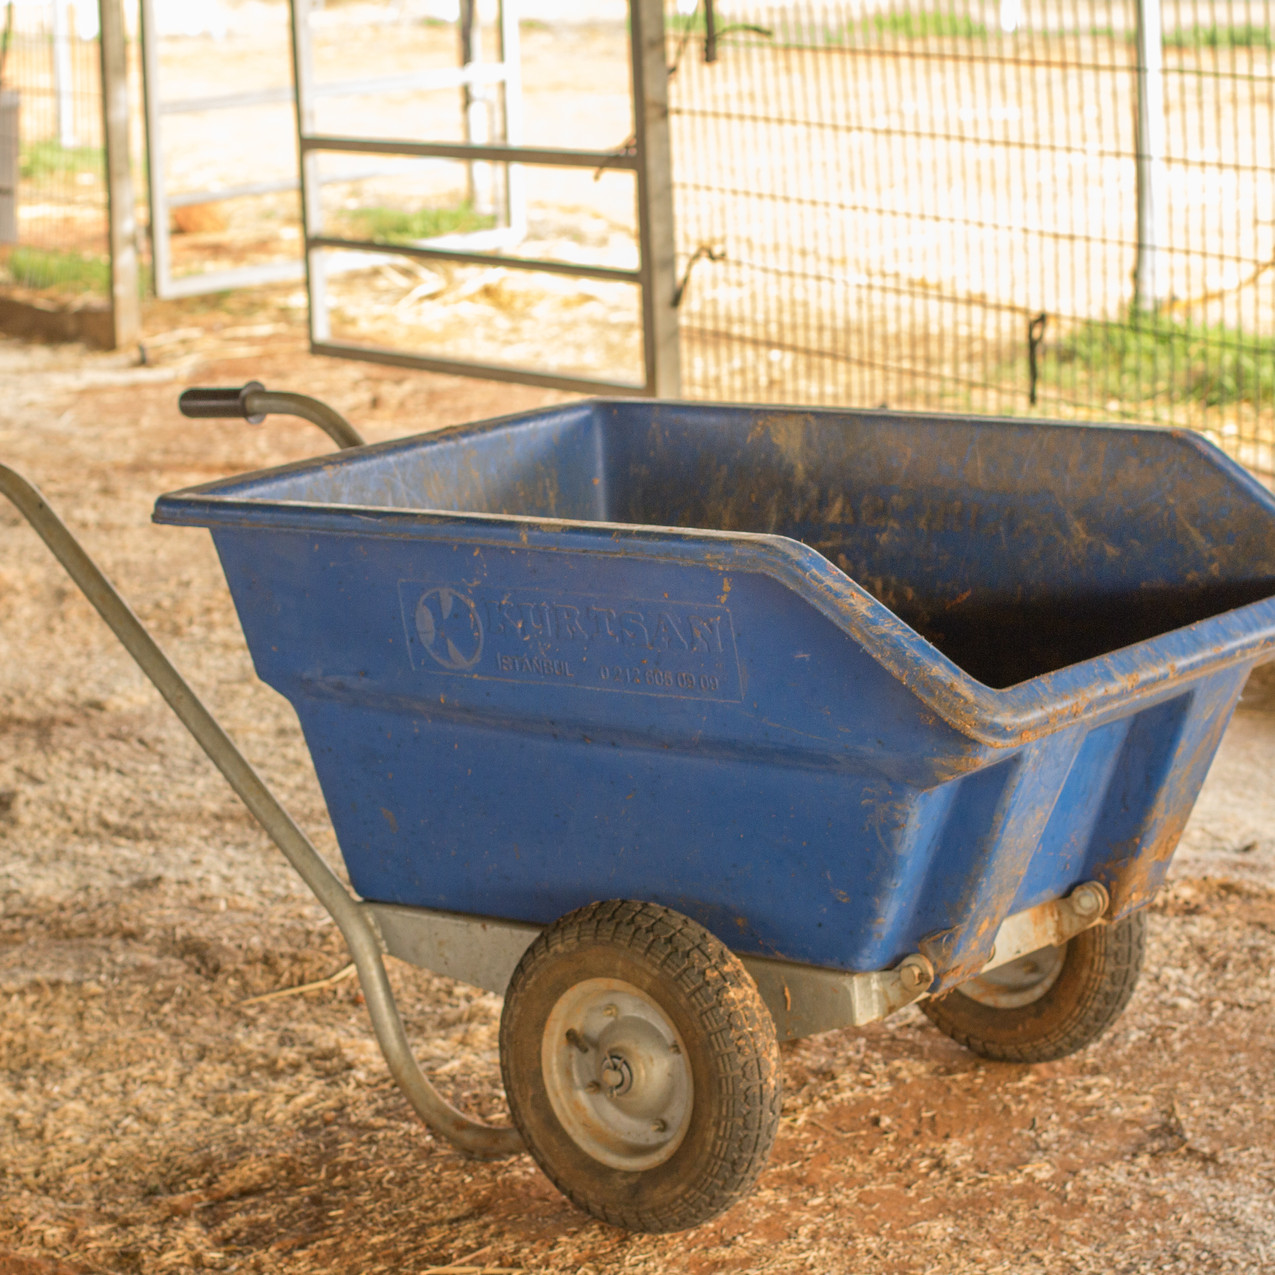 A second wheel barrow like this would reduce the amount of trips Lucy and her volunteers have to do out to the field to dump the rubbish